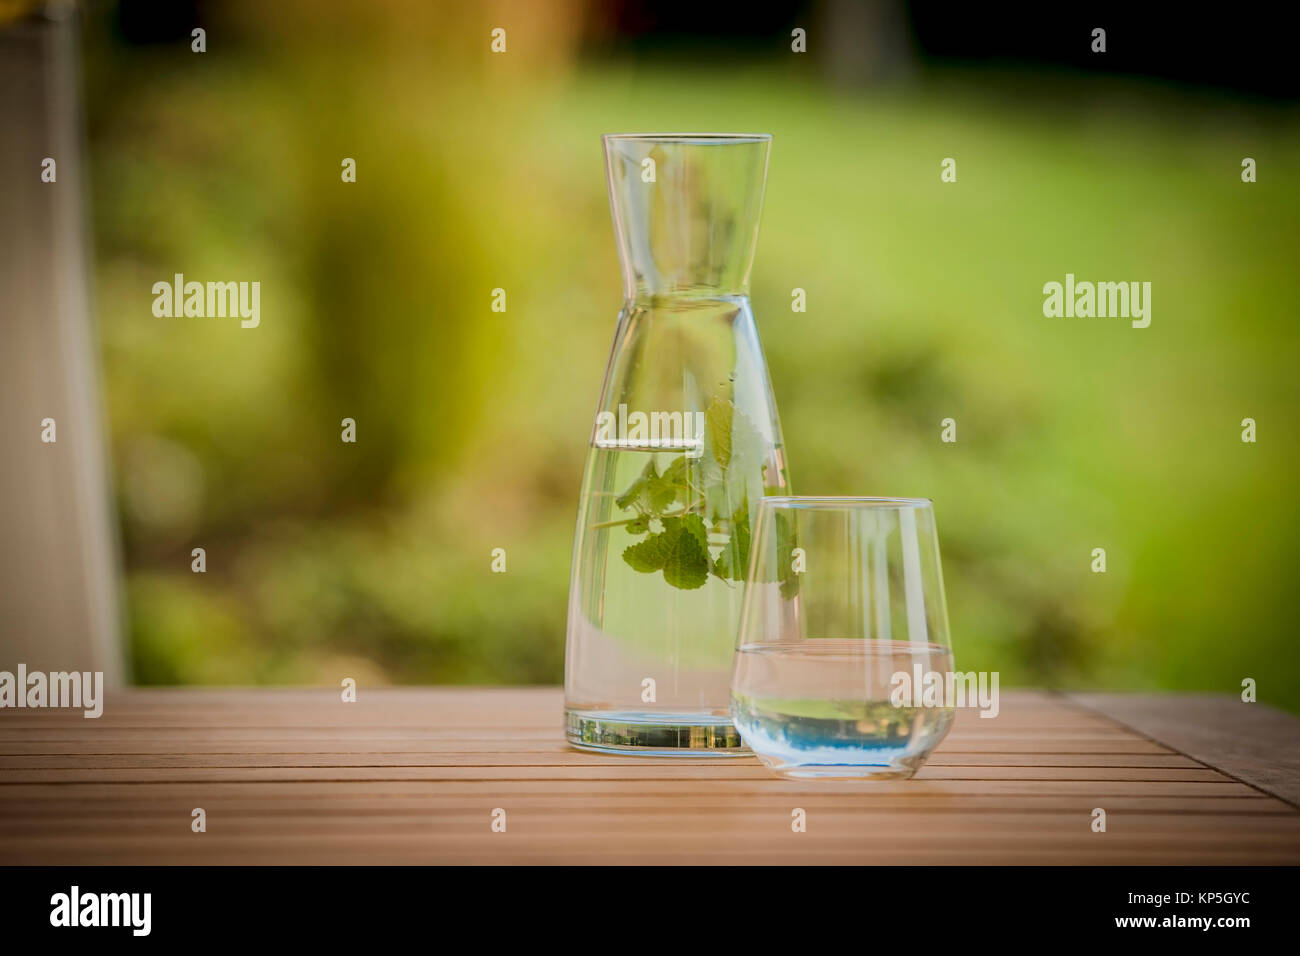 Wasserkrug- und glas mit Kraeutern - water jar with herbs Stock Photo